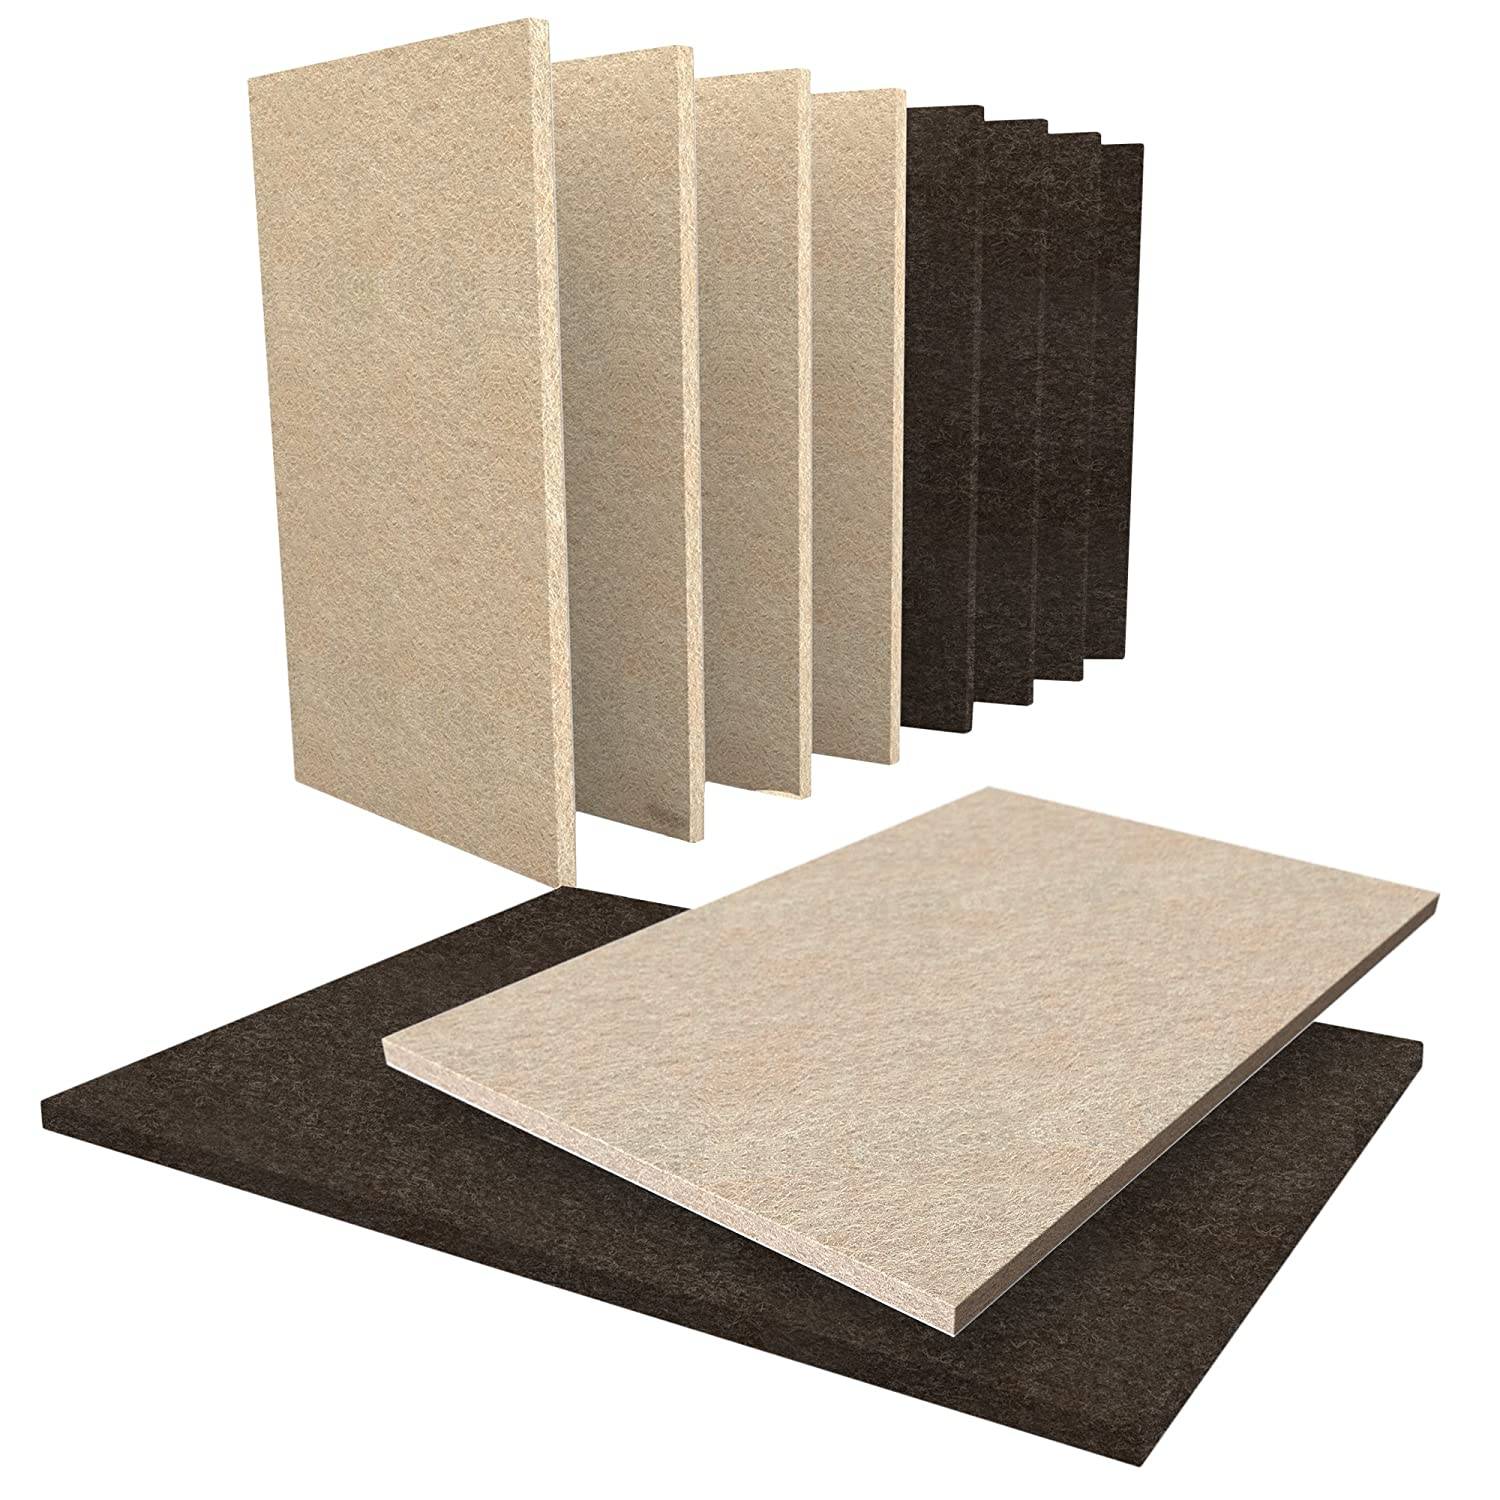 Floor Protectors 10 Piece Furniture Pads, 5 Large Beige 15x11cm Felt Pads & 5 Large Brown 15x11cm Felt Furniture Pads. Felt Pads for Furniture That Can Be Cut to Size. Furniture Floor Protectors SIMALA